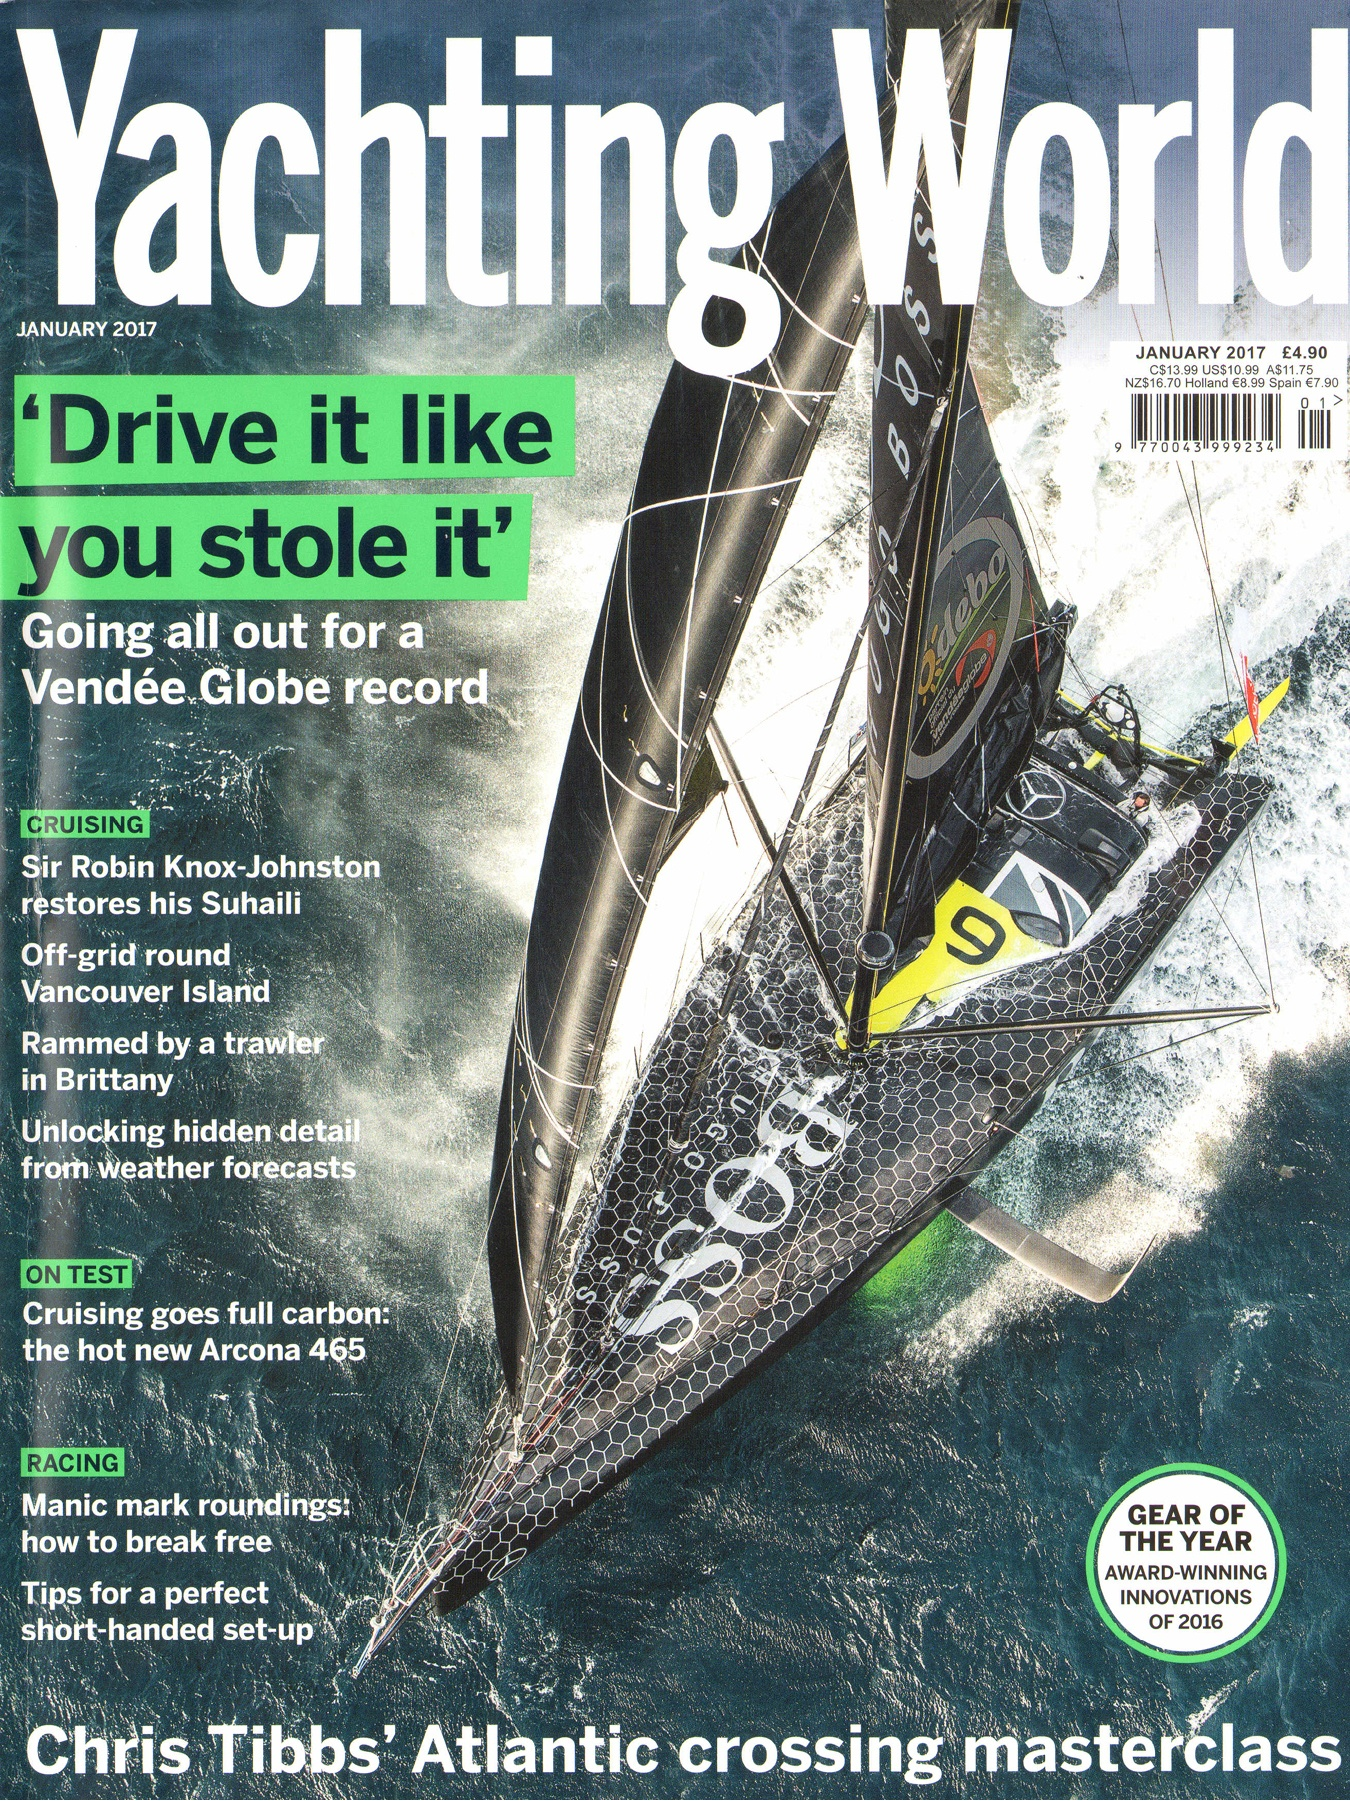 Yachting World Jan 2107 Front Cover_2.jpg